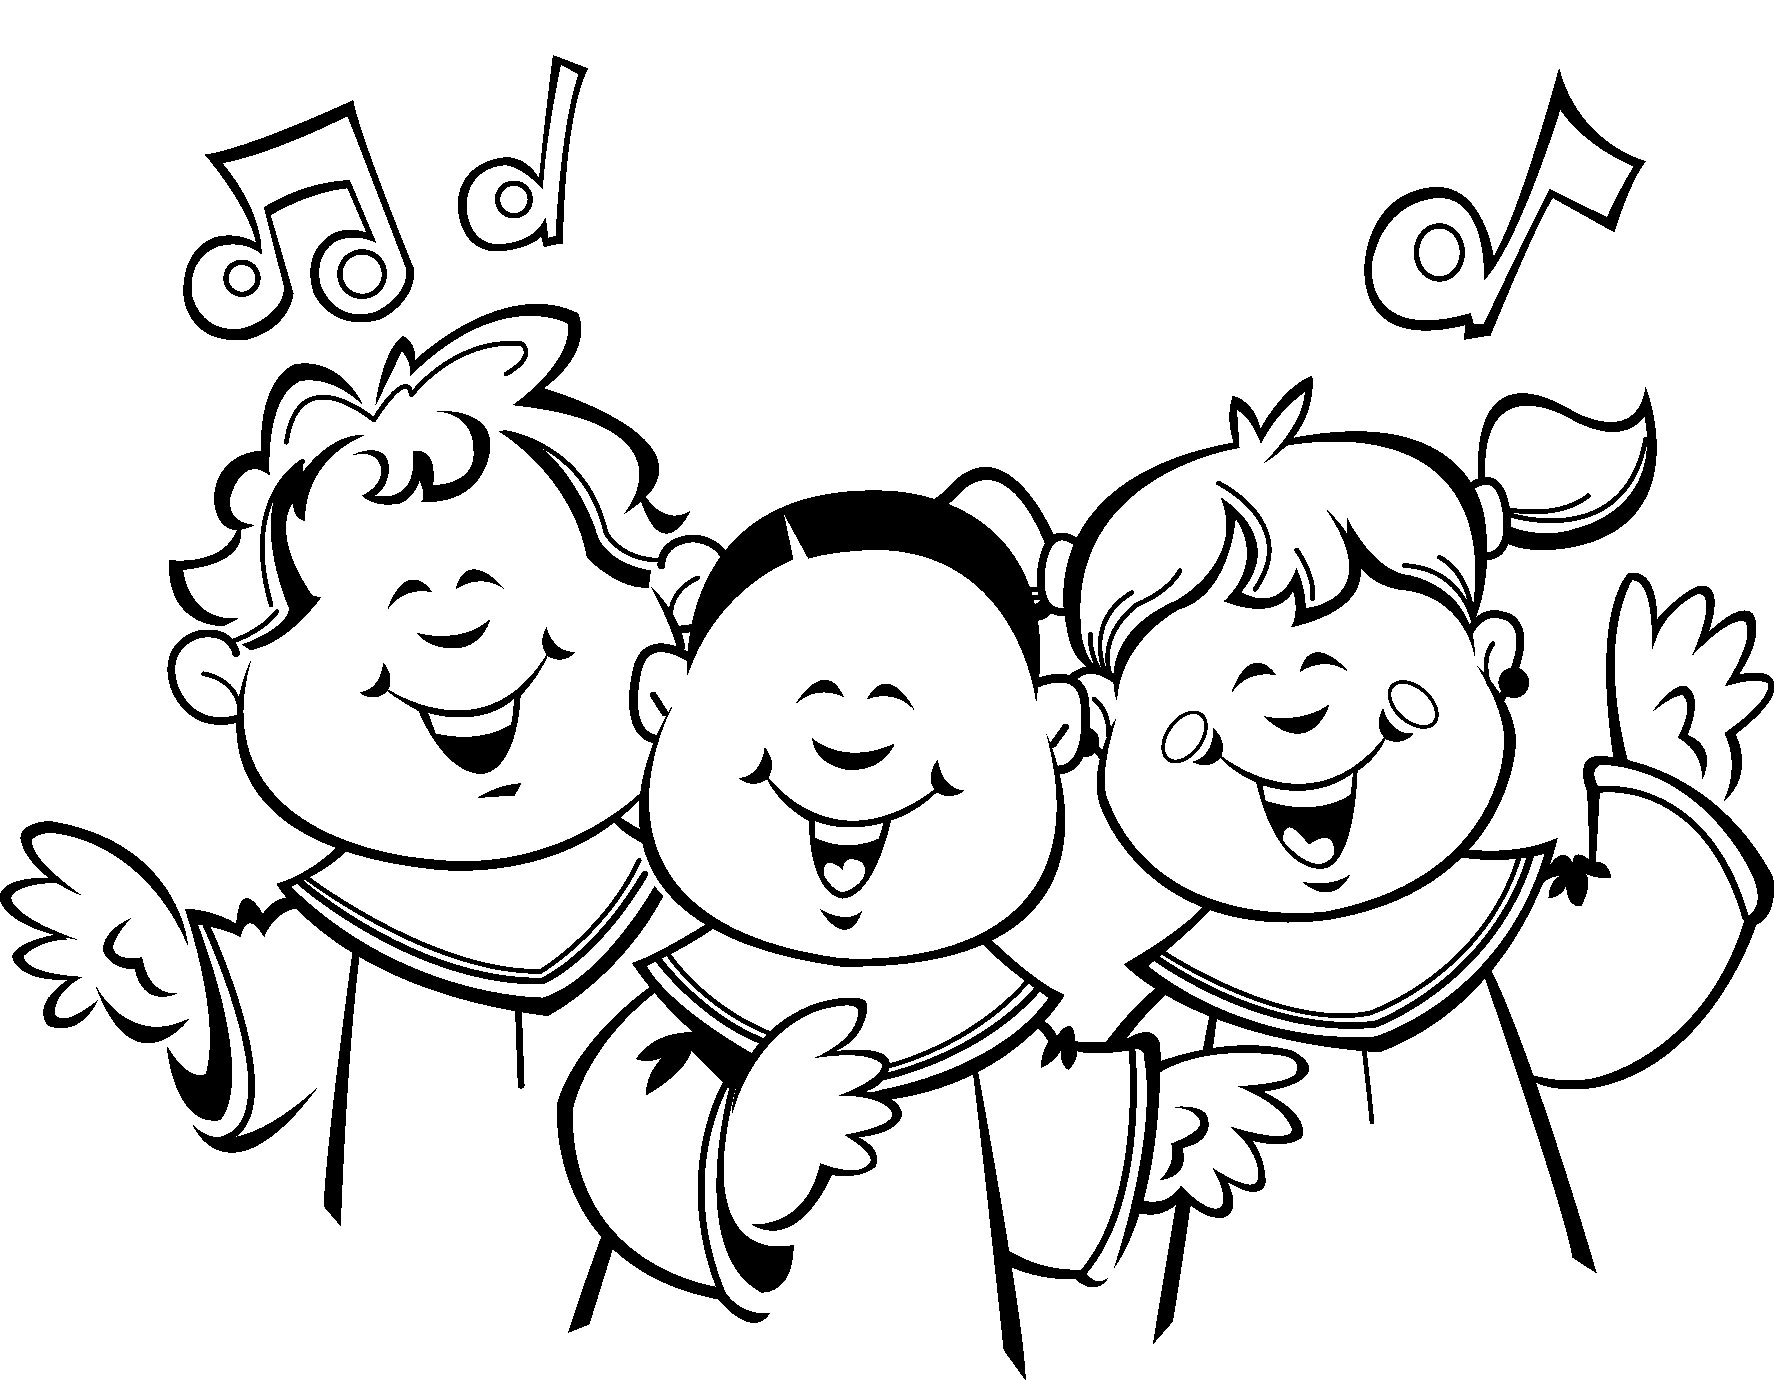 Singer clipart youth choir Sketch 3 Choirs coloring page